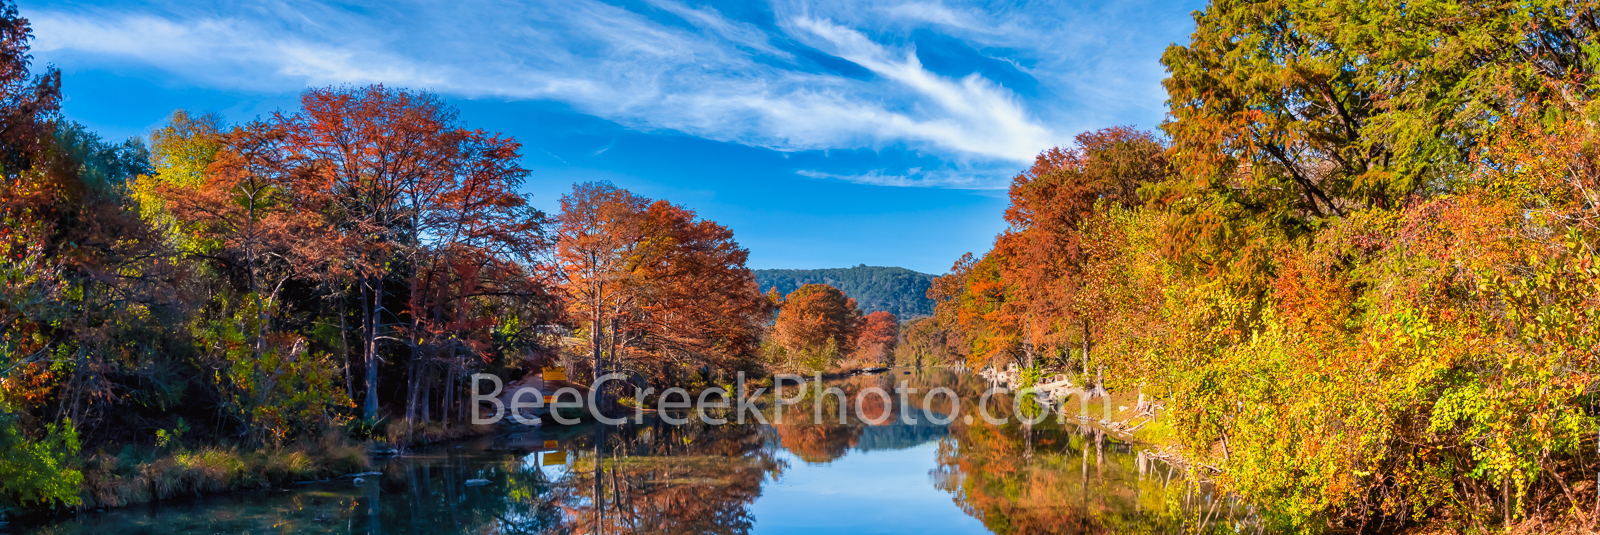 guadalupe river, autumn,  river, texas hill country, floating, rapids, hill country, cypress, fall, colors, orange, yellow, reds, water, scenic, scenic hill country, texas scenery, texas landscape, ne, photo